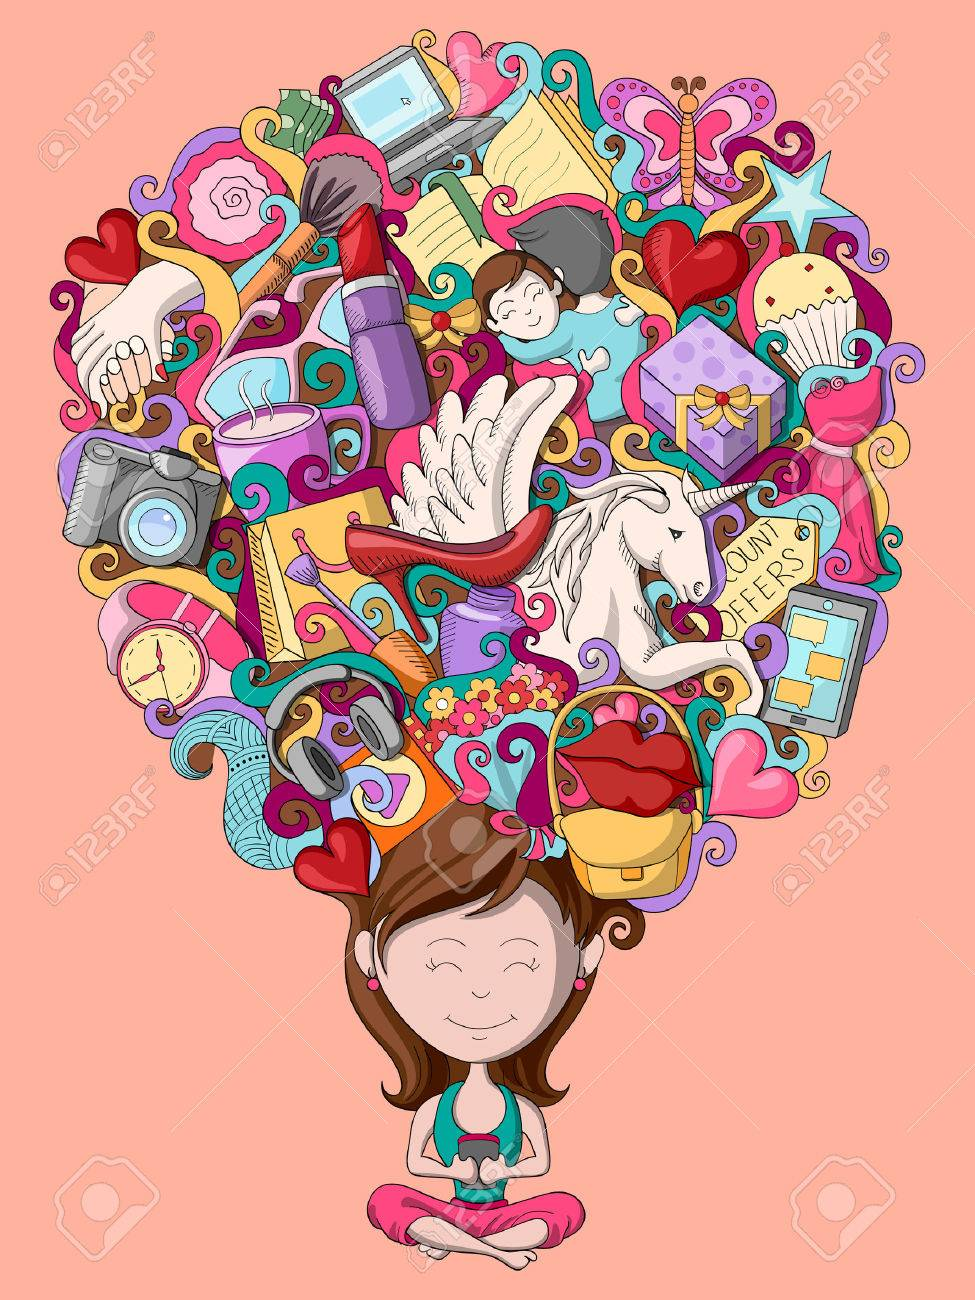 vector illustration of dream and thought of teenage girl - 55751732